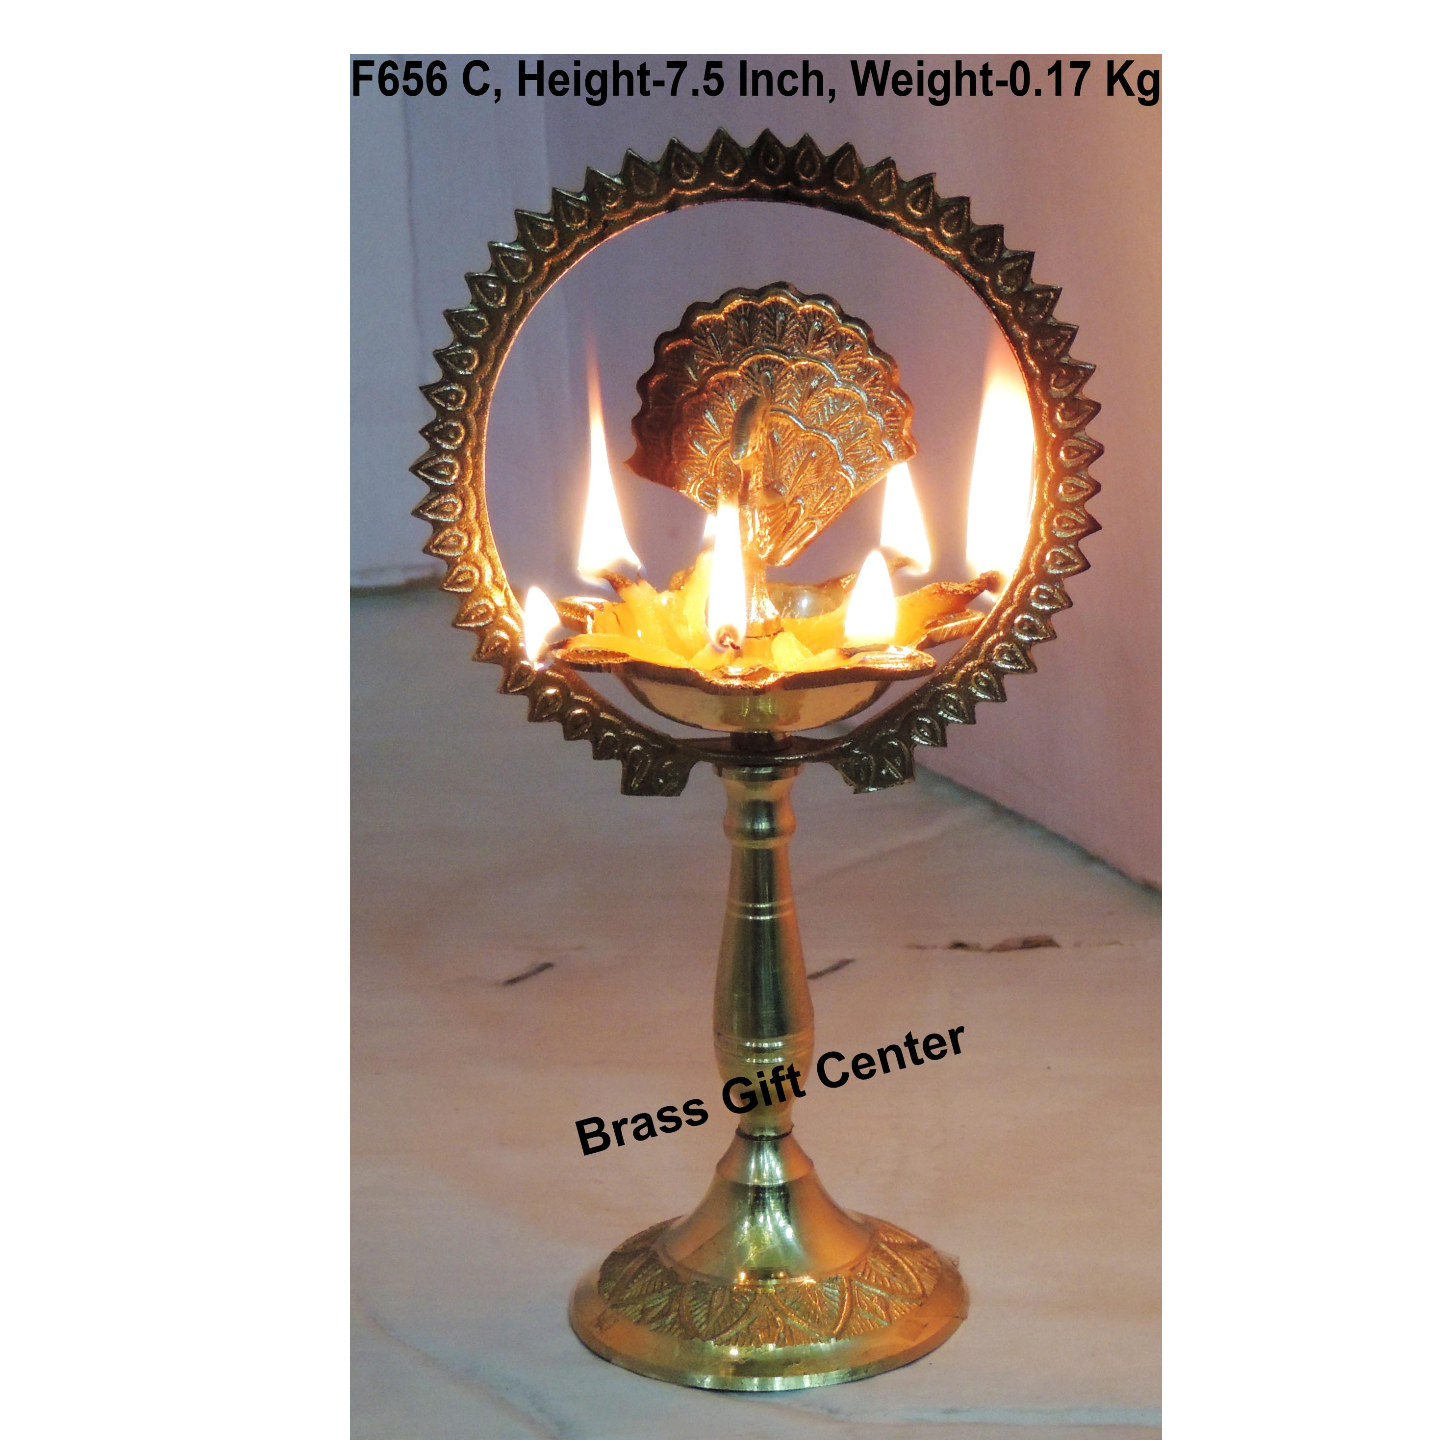 Brass Peacock More Diya Deepak 170 GM - 4x2.5x7.5 Inch F656 C